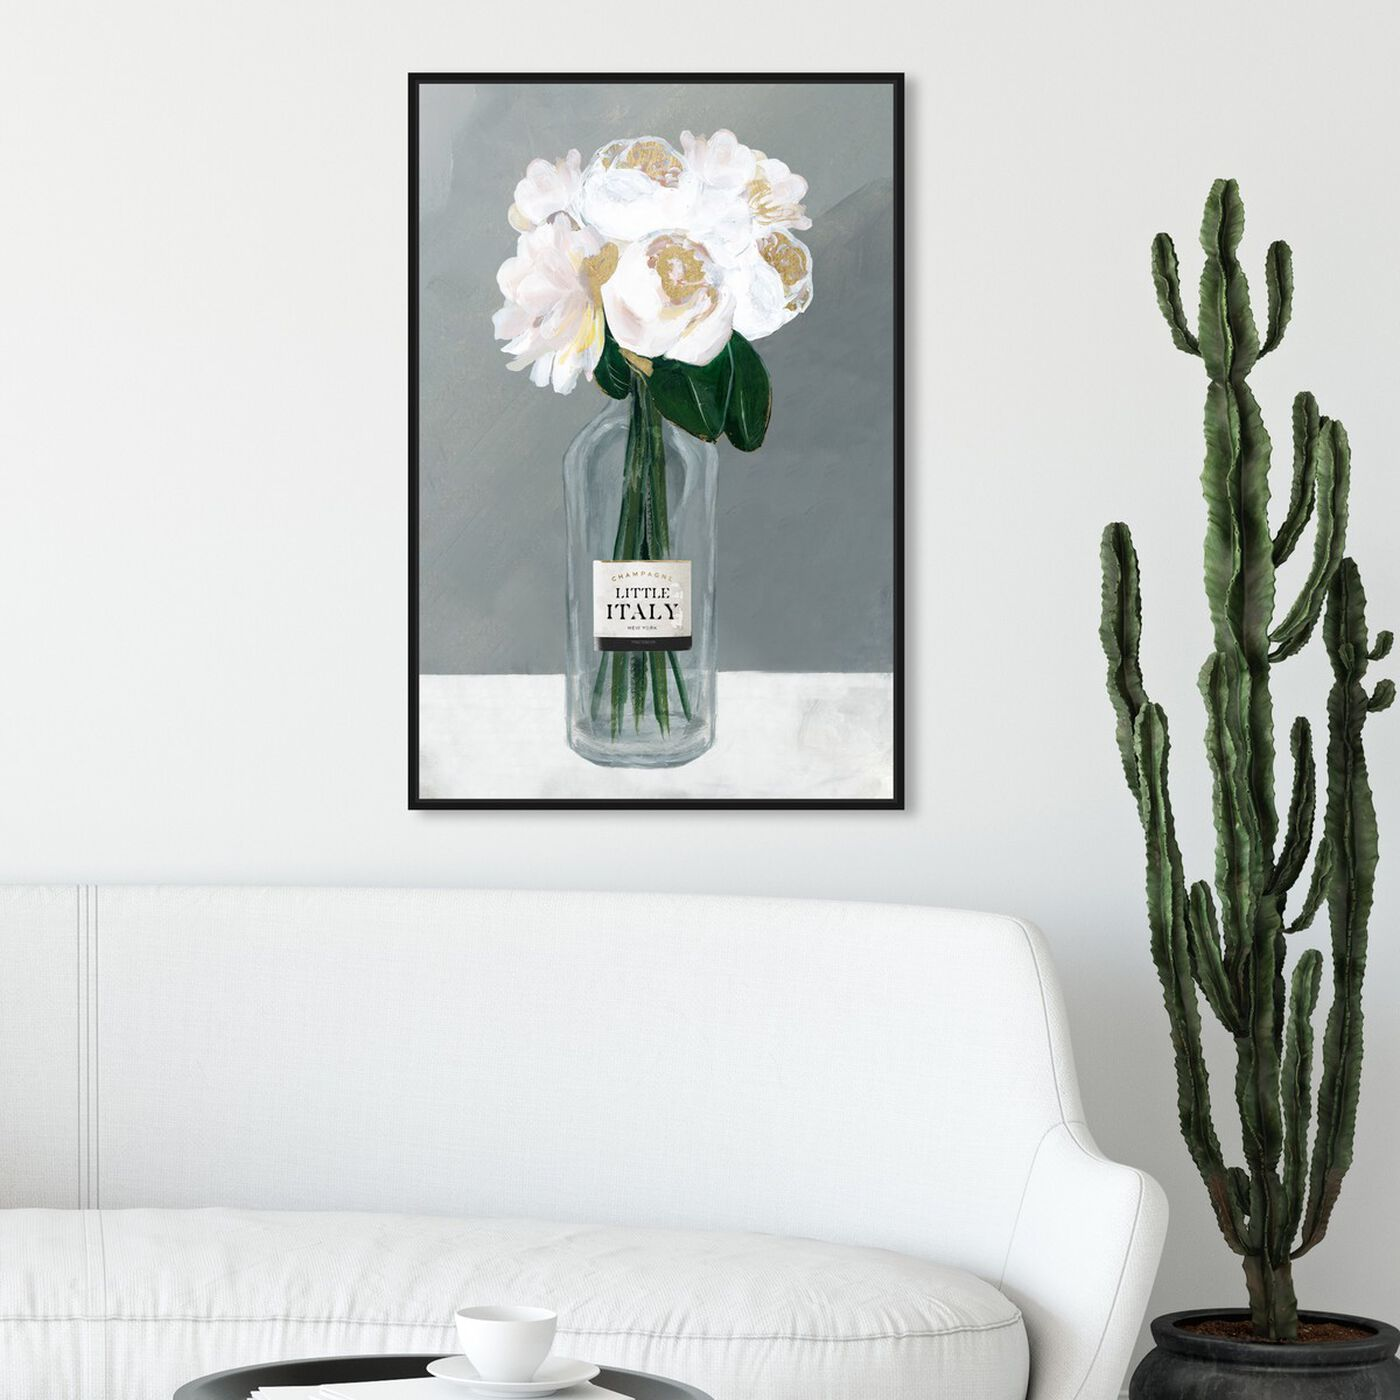 Hanging view of Little Italy Roses featuring floral and botanical and florals art.